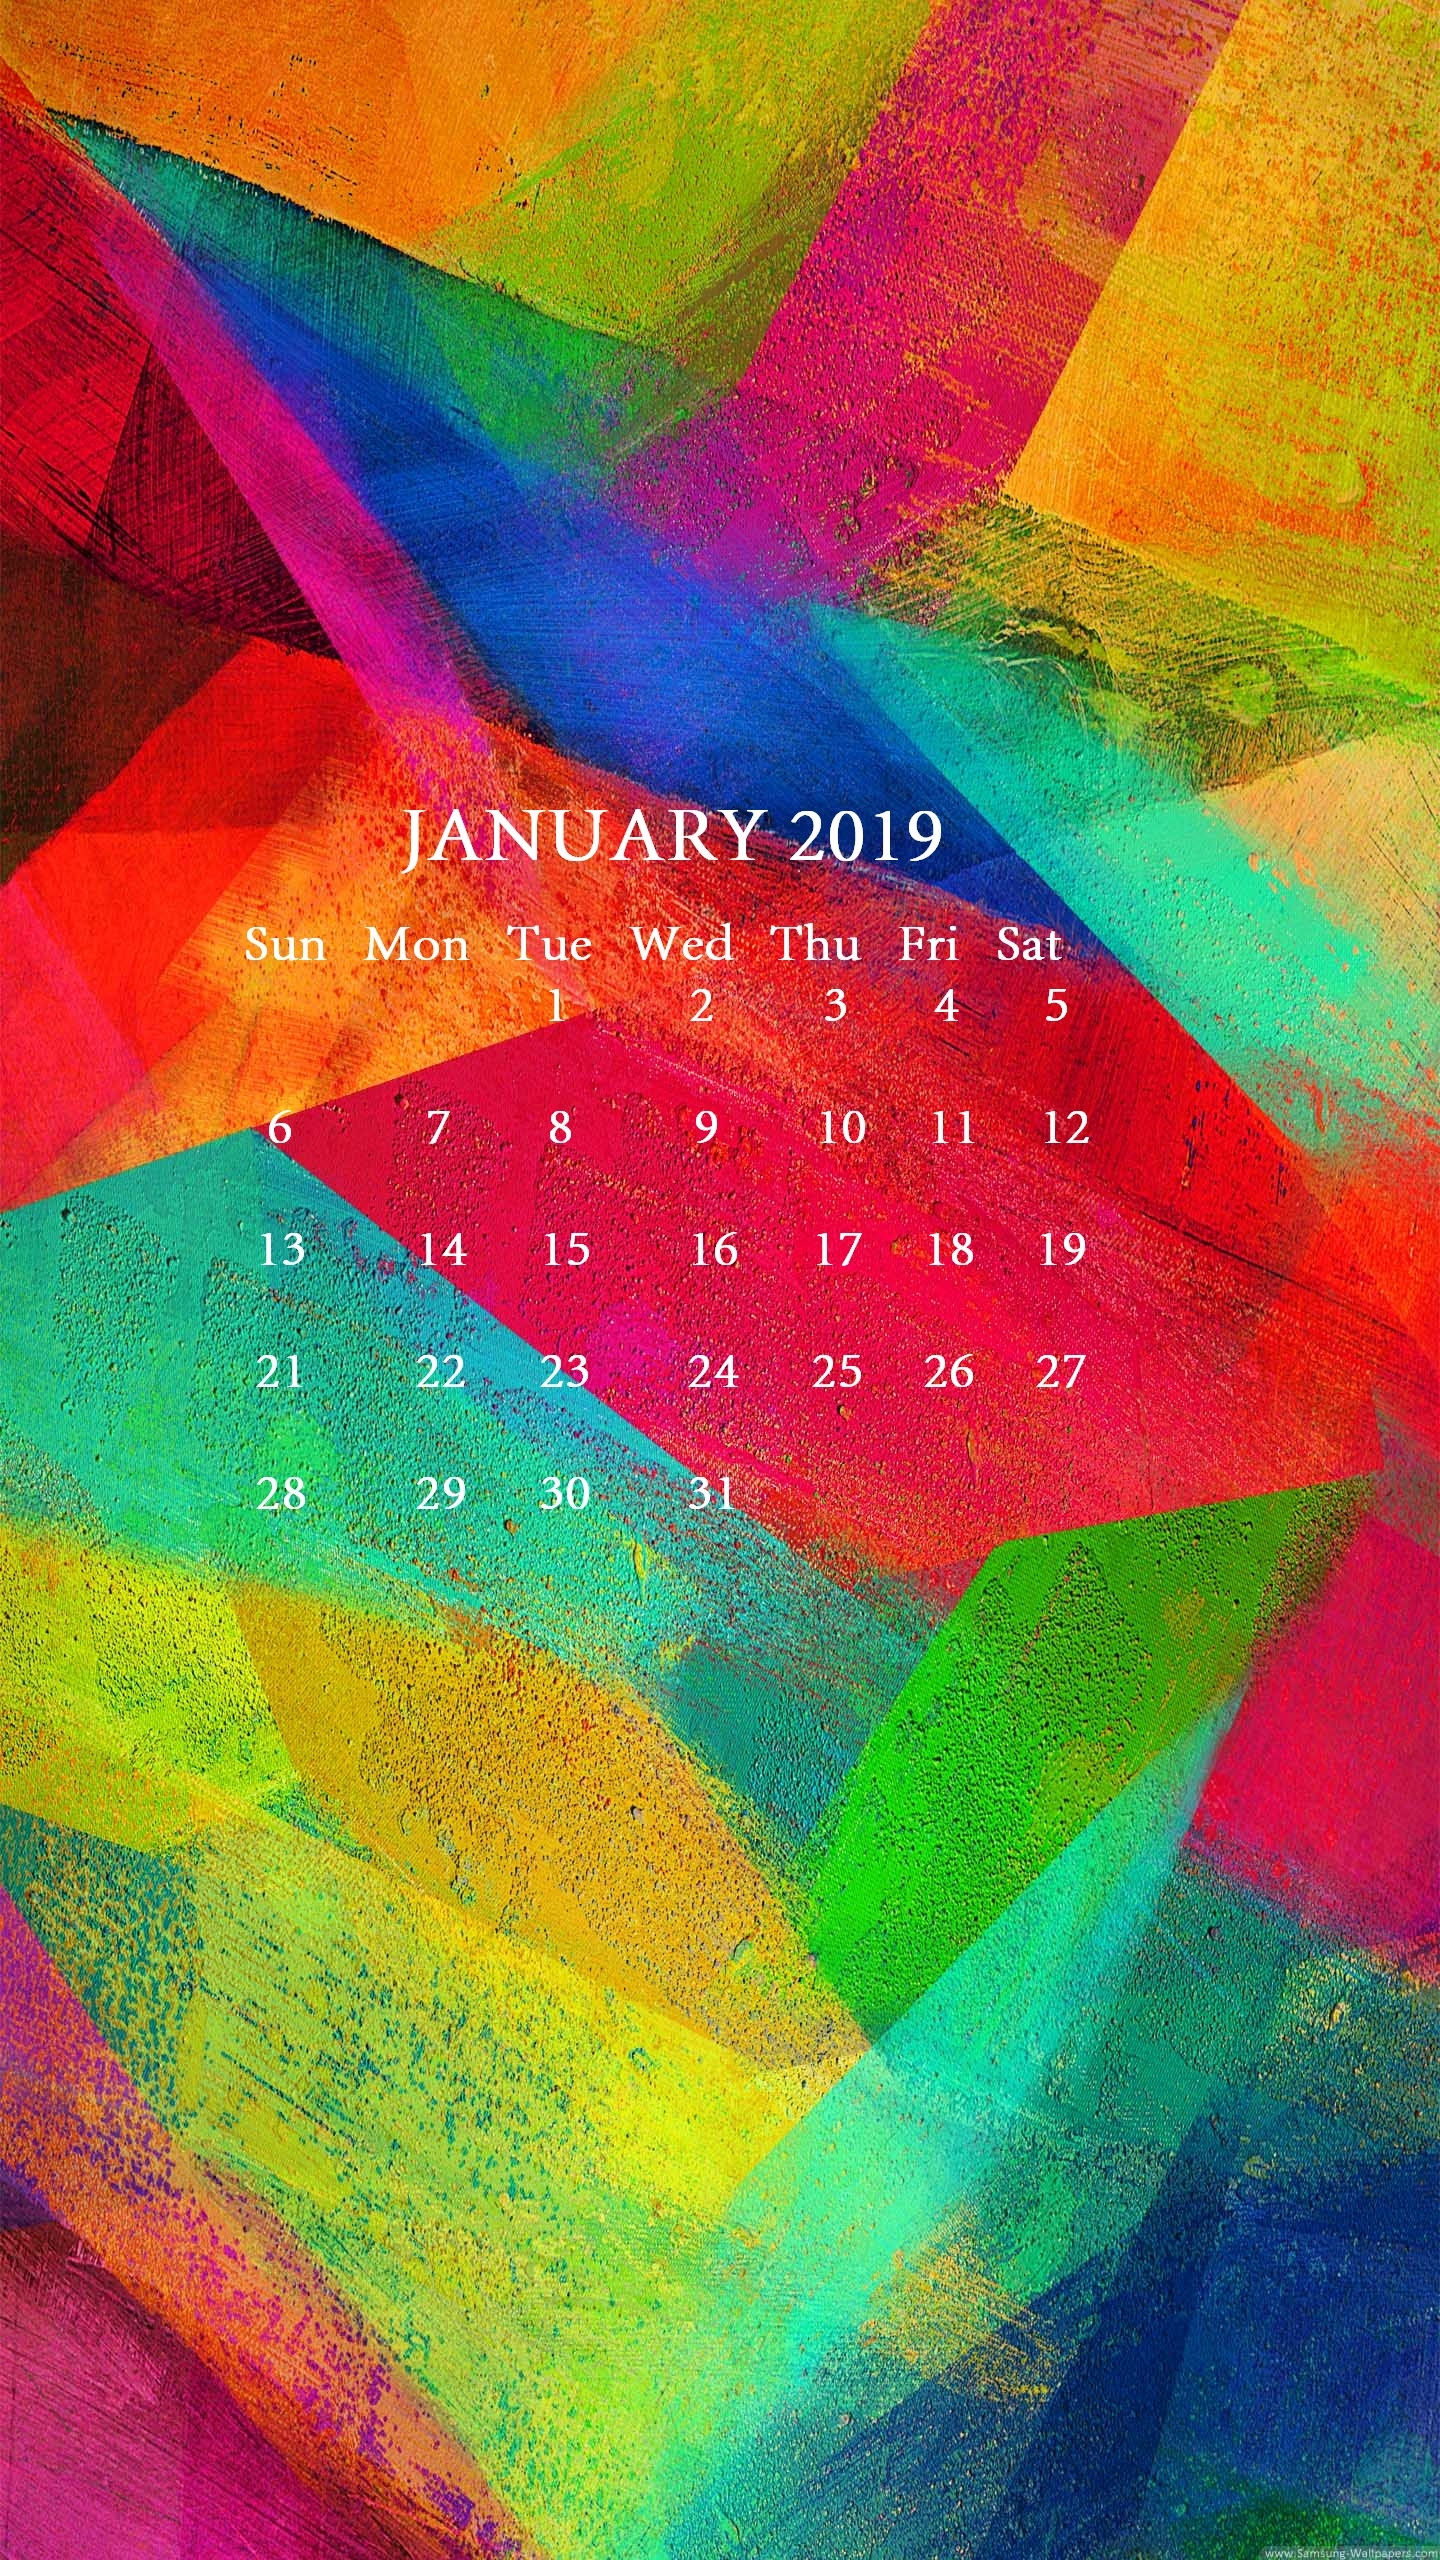 january 2019 iphone calendar wallpaper::January 2019 iPhone Calendar